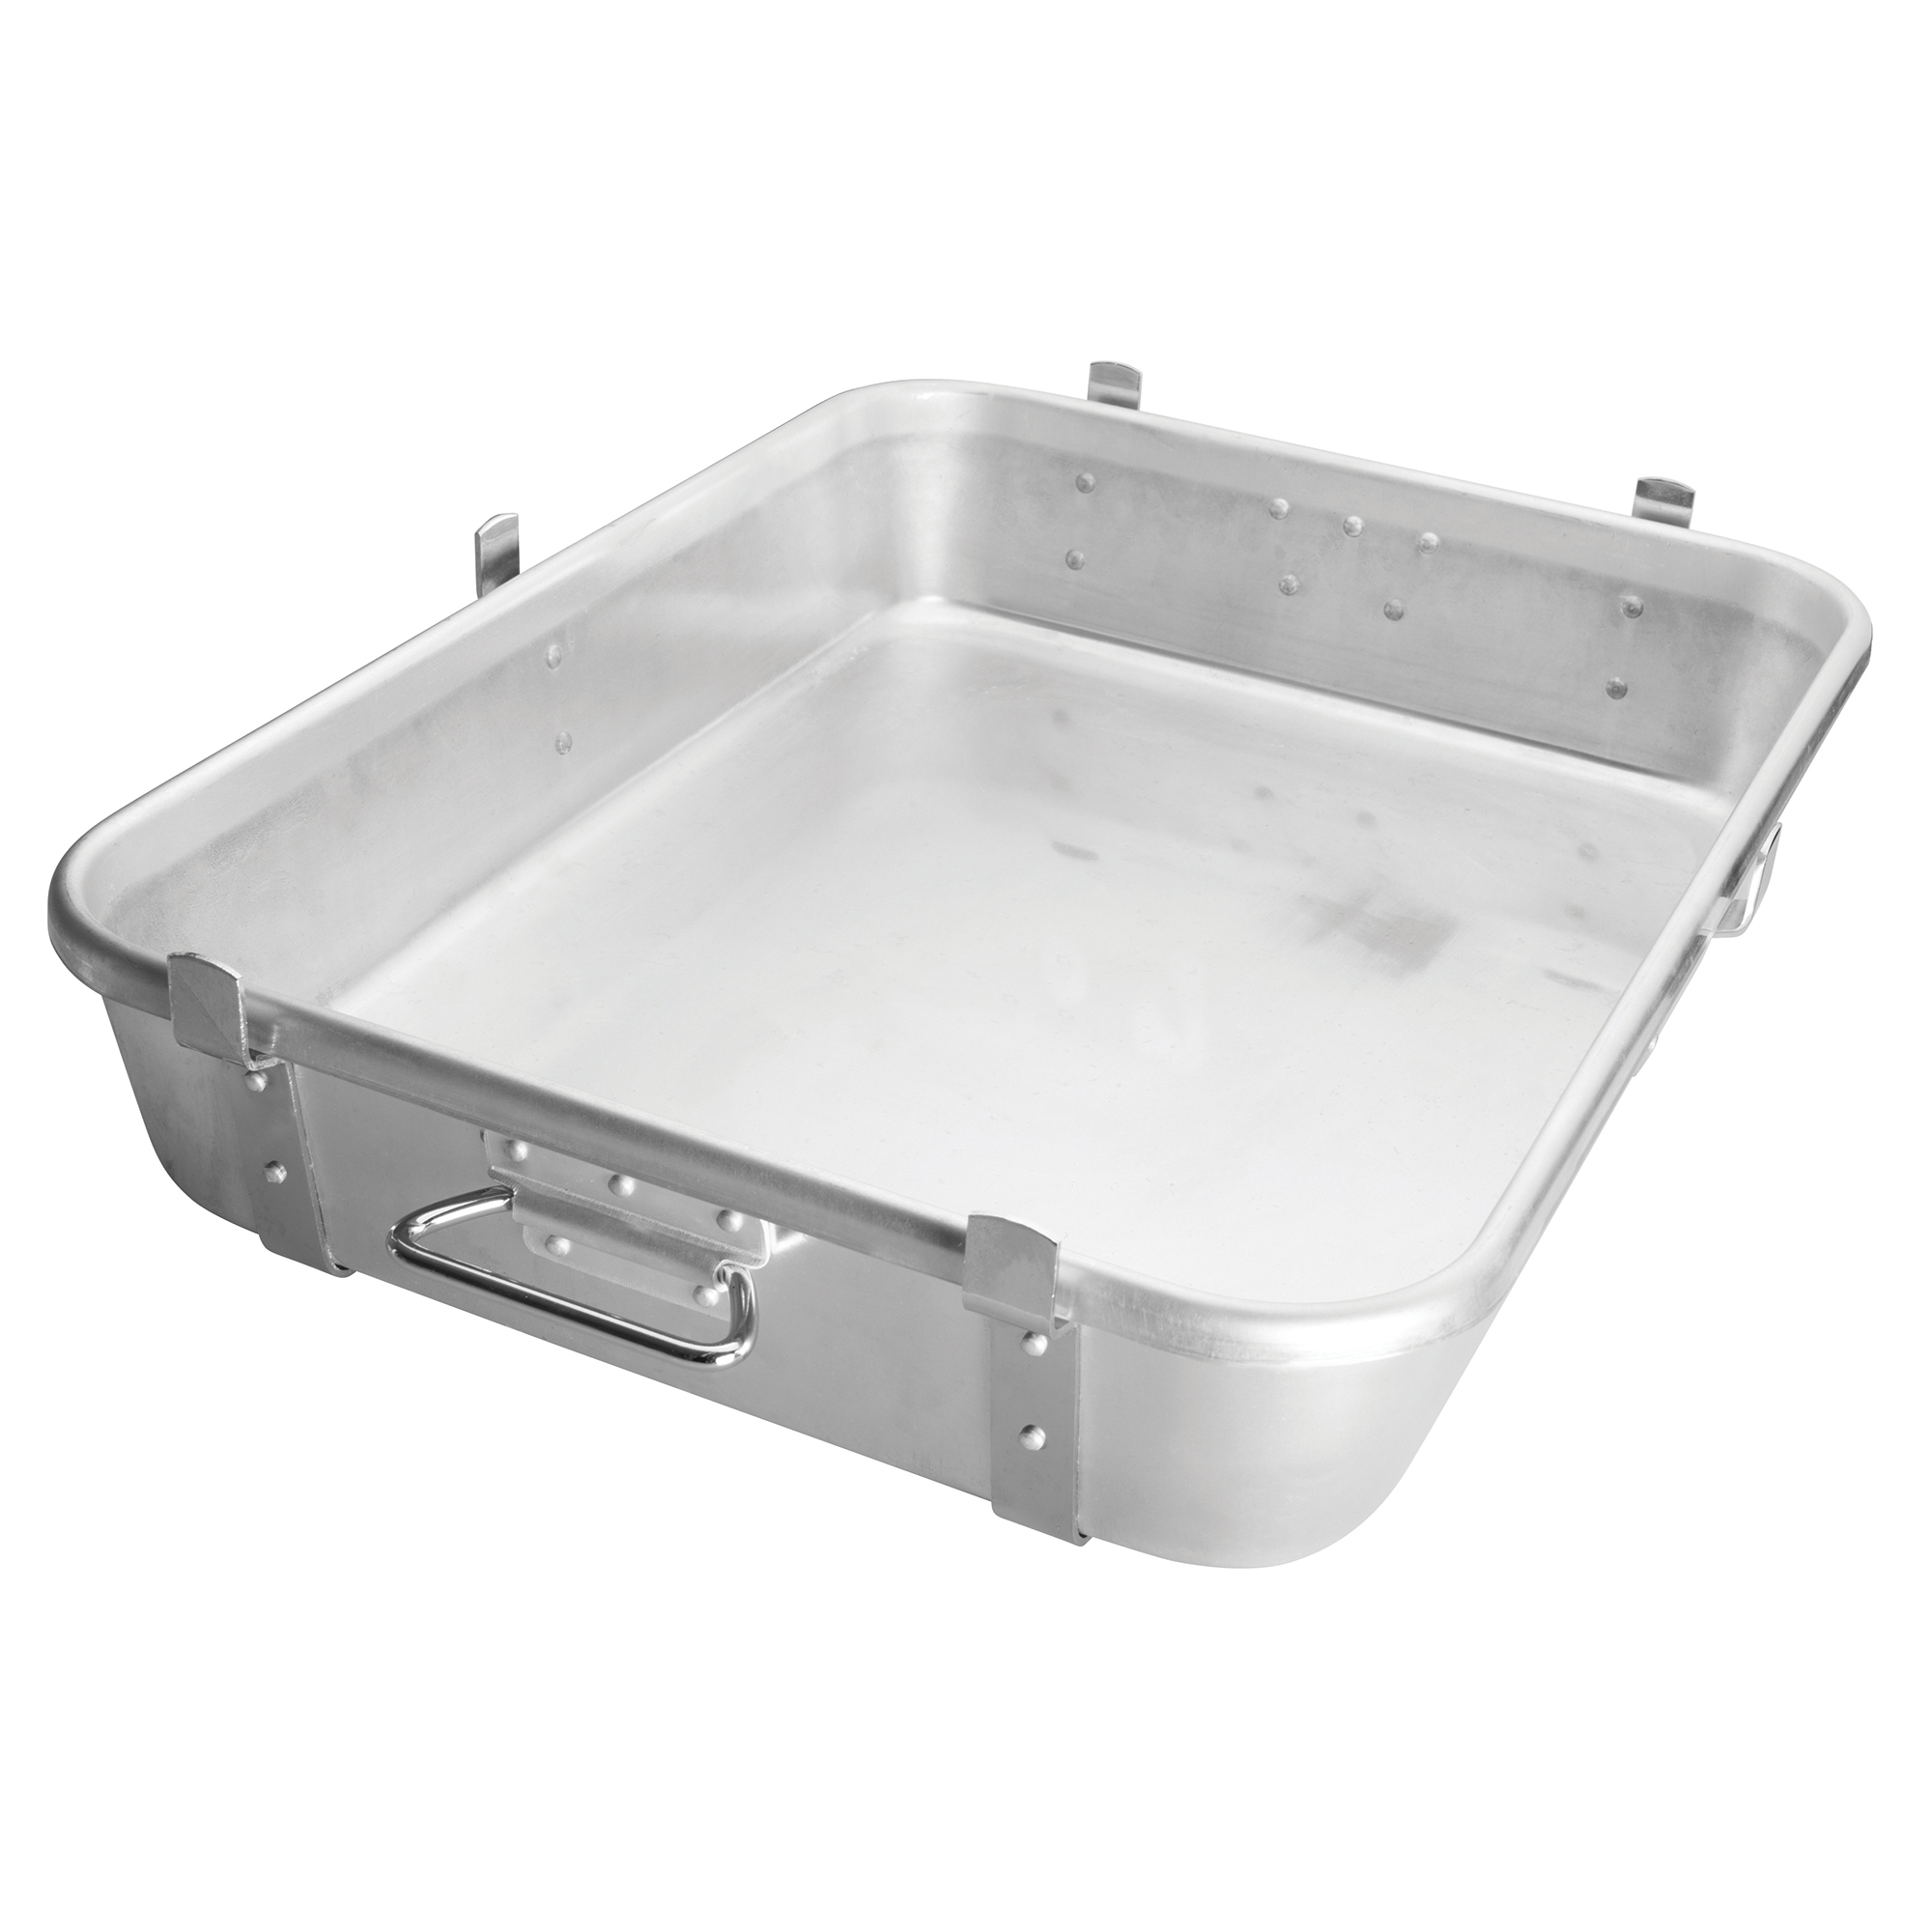 Winco ALRP-1824L roasting pan